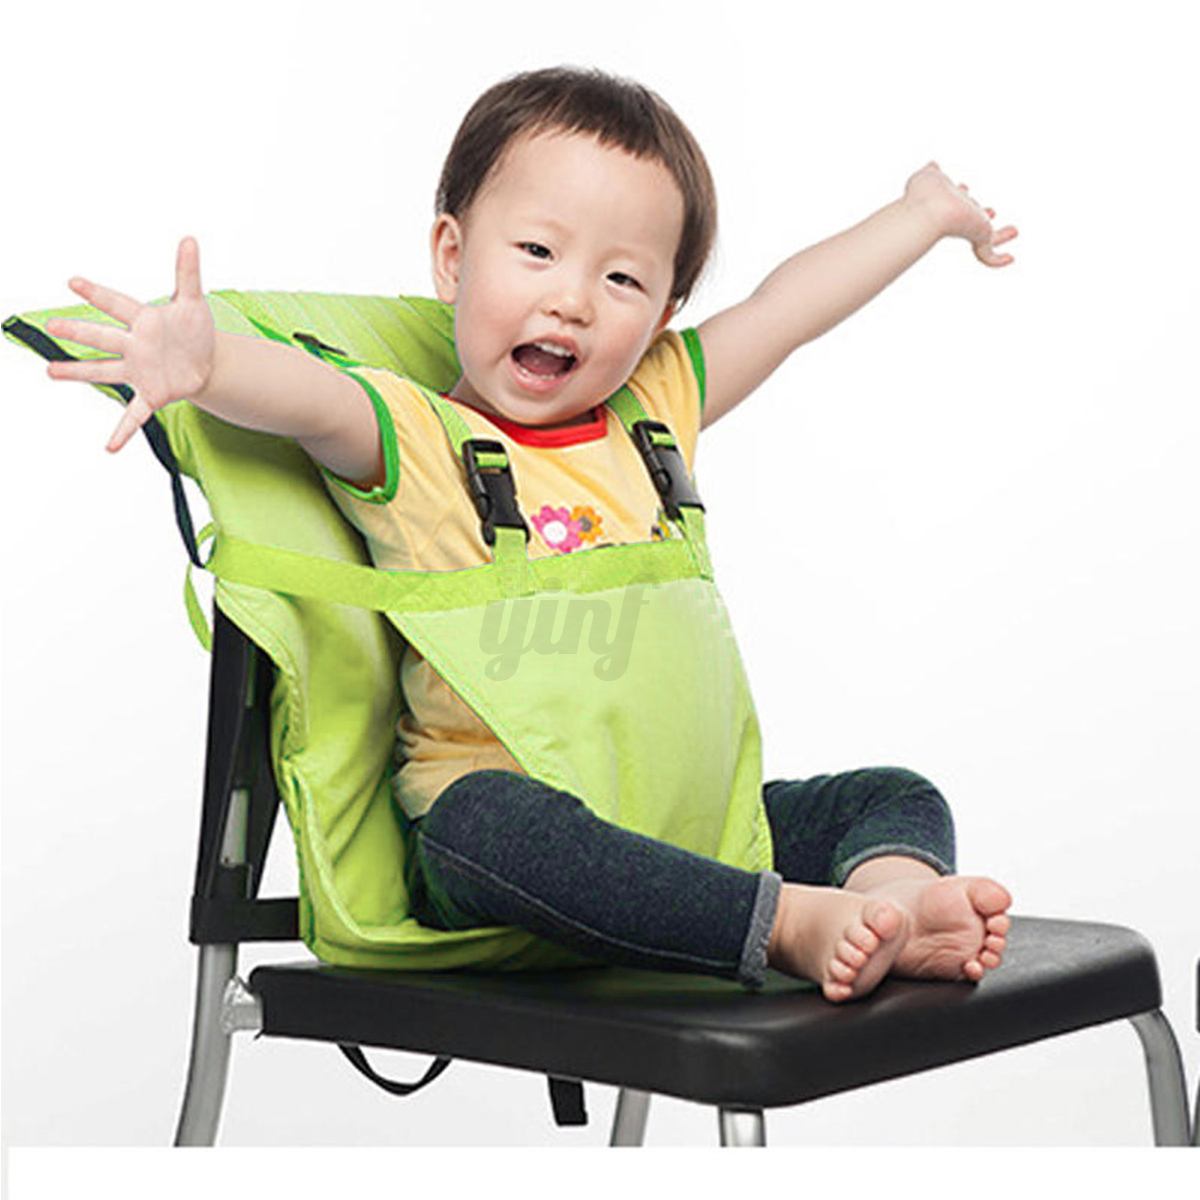 Baby Chair For Eating Portable Baby Infant Kids Feeding High Chair Harness Seat